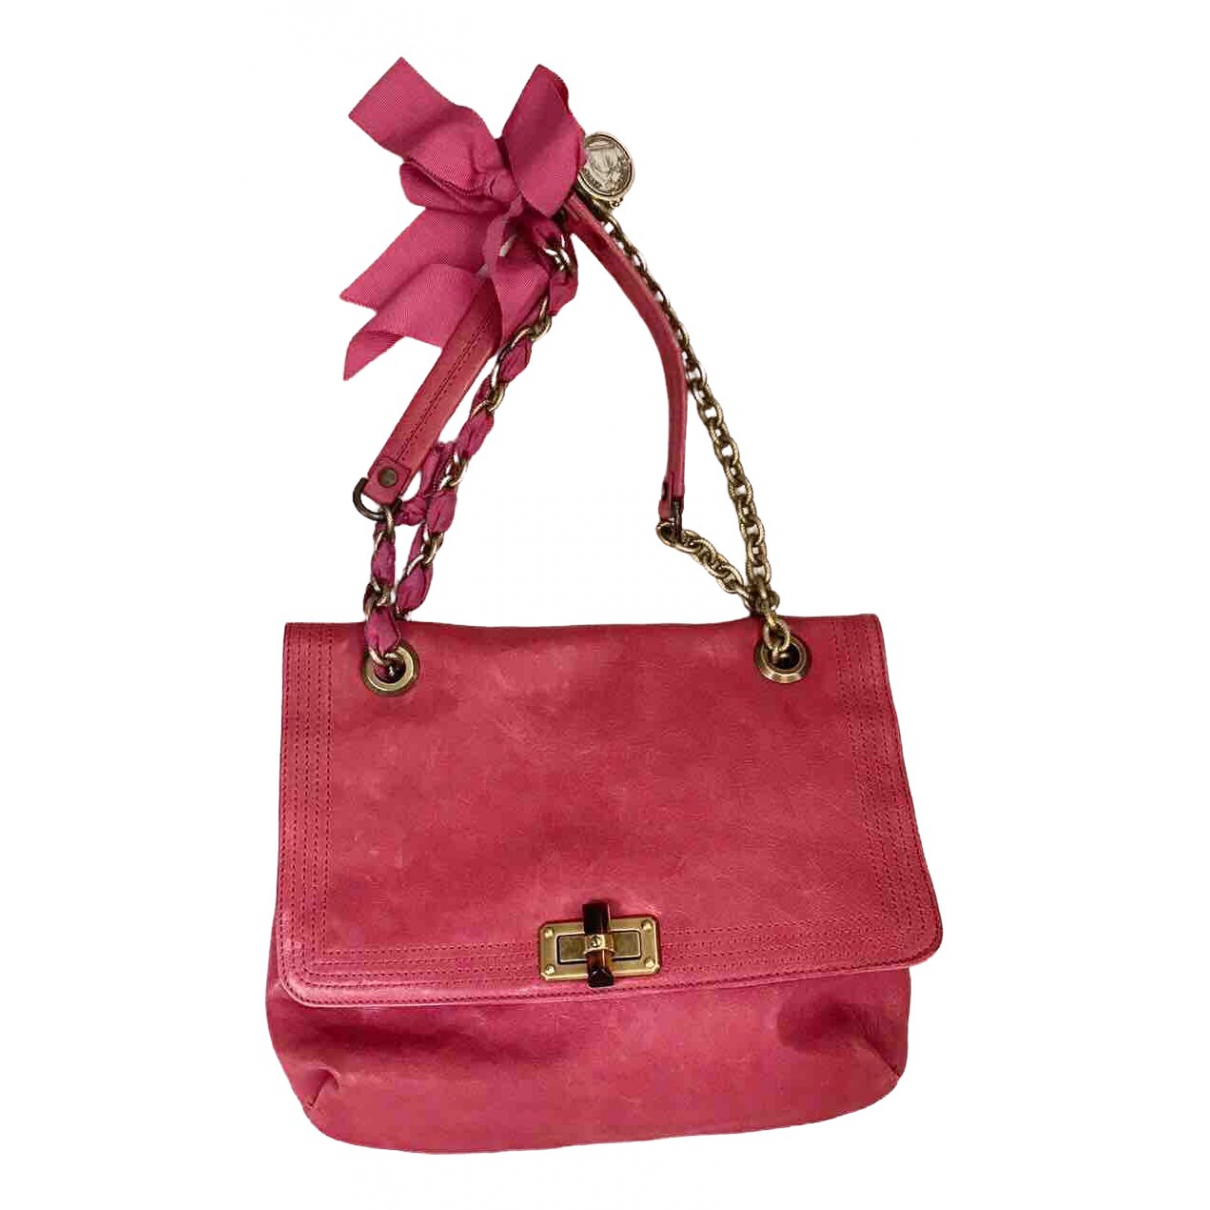 Lanvin Happy Handtasche in  Rosa Leder